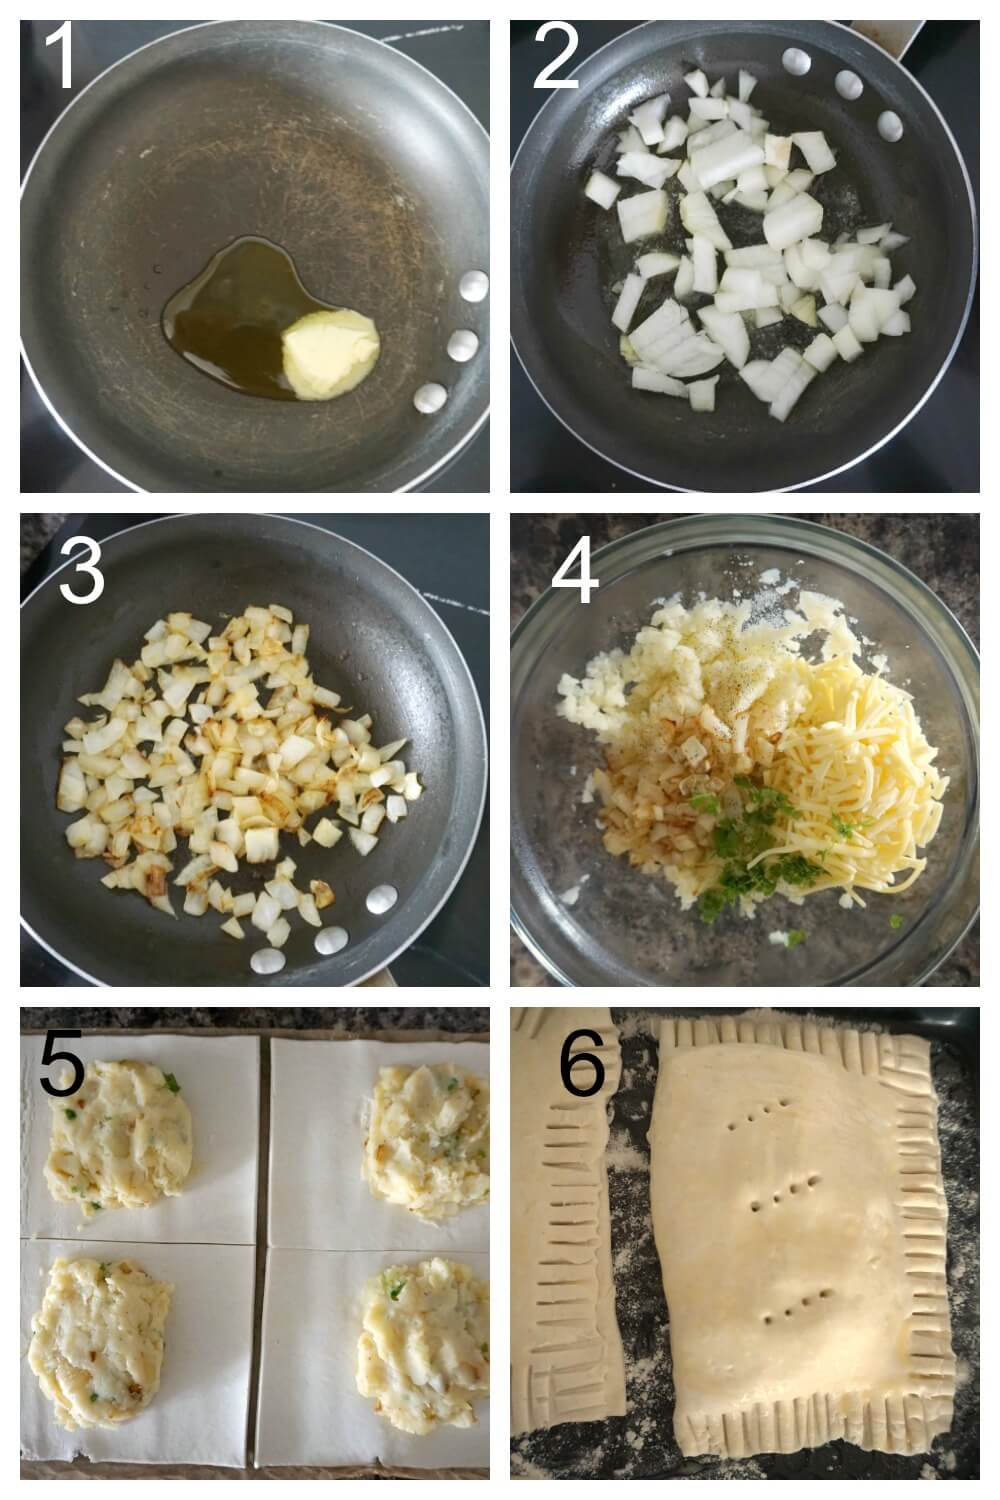 Collage of 6 photos to show how to make potato, cheese and onion pasty